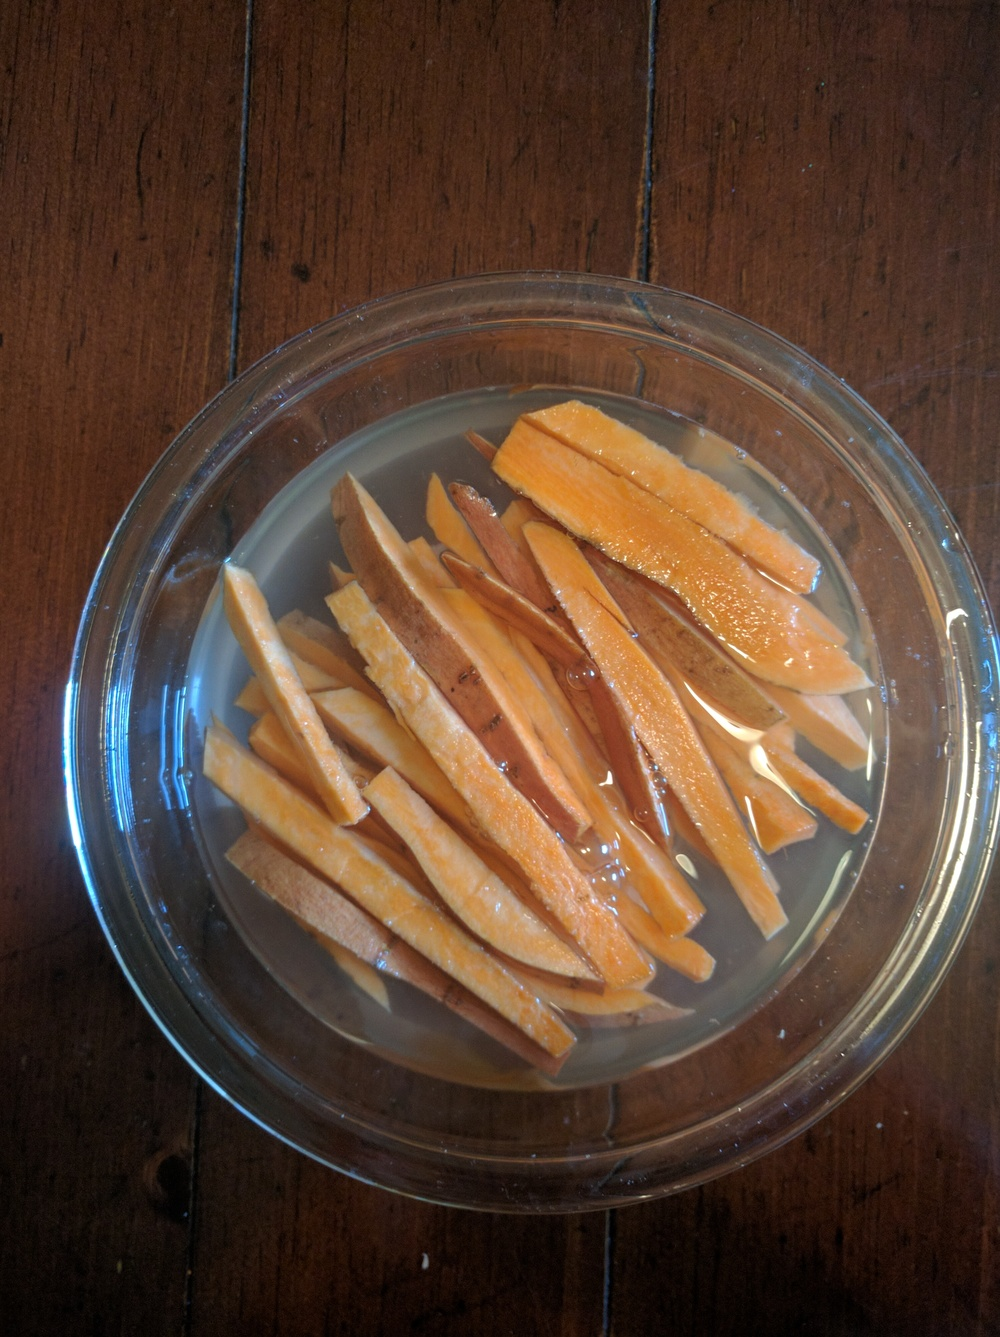 Fries ready for an hour in the fridge